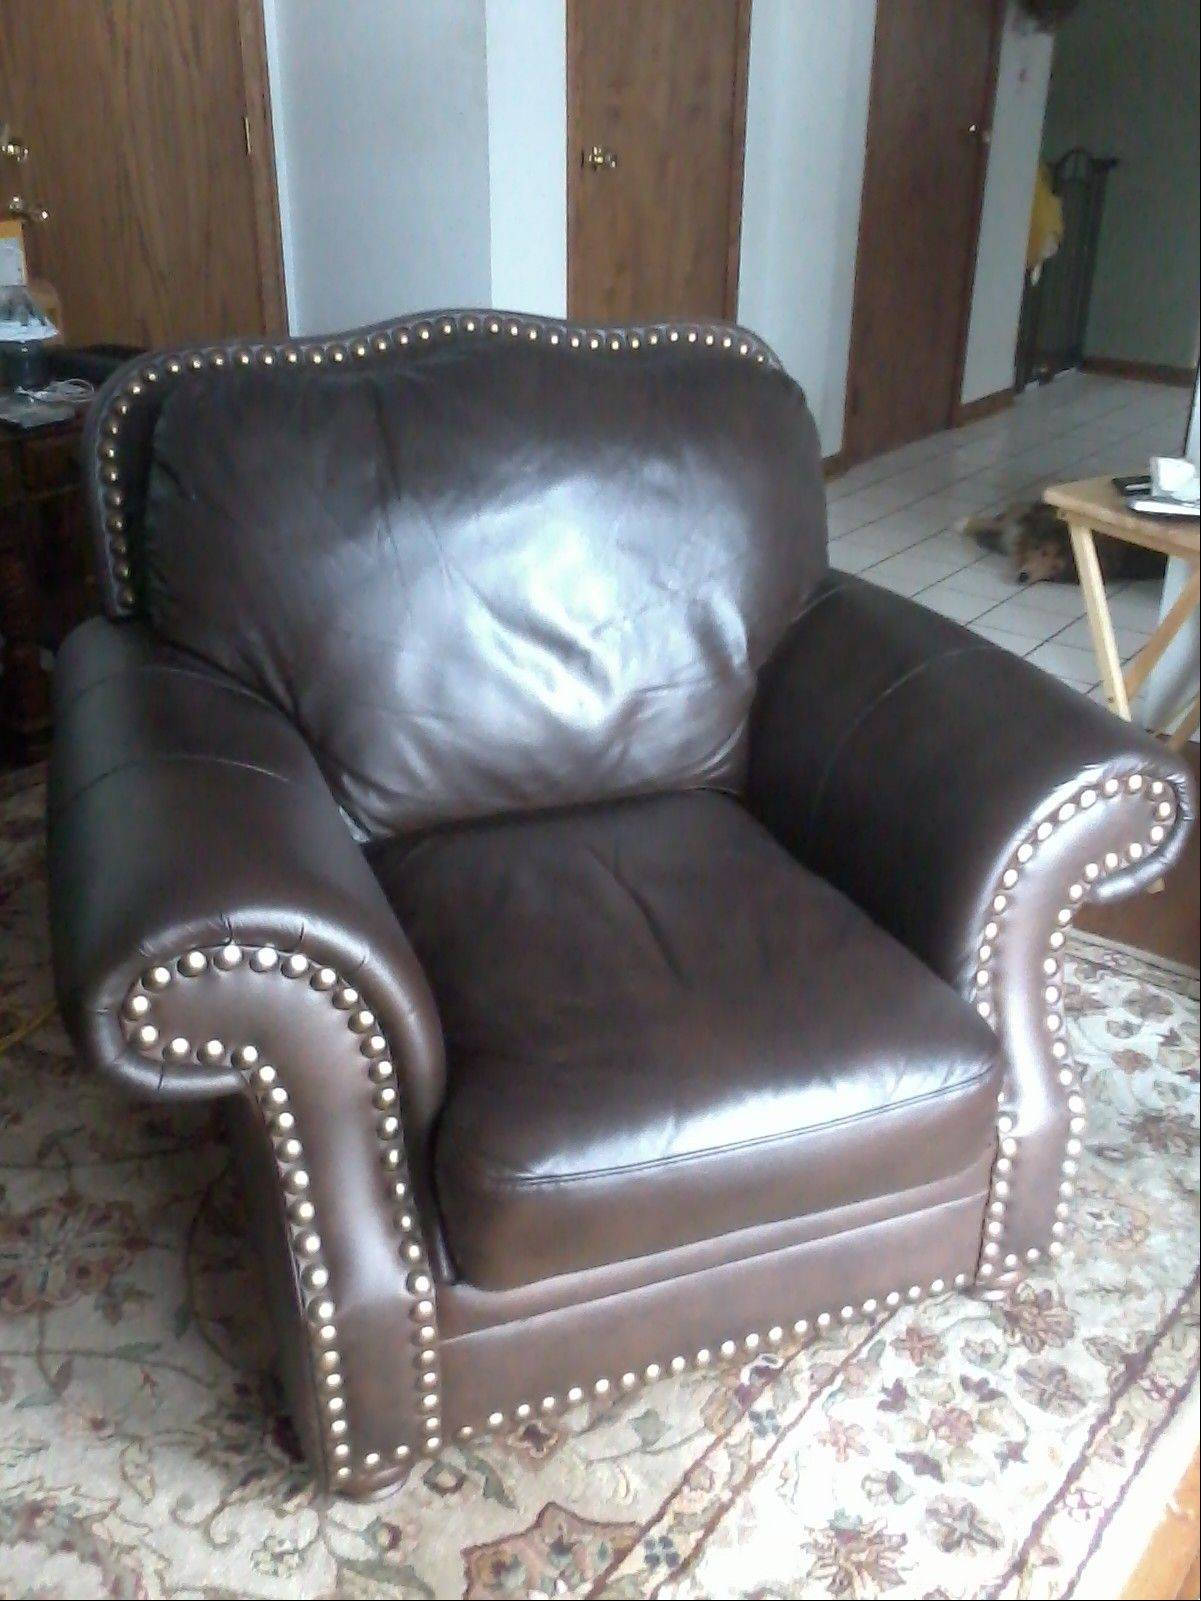 The same leather chair is shown after it has been restored by Fibrenew.